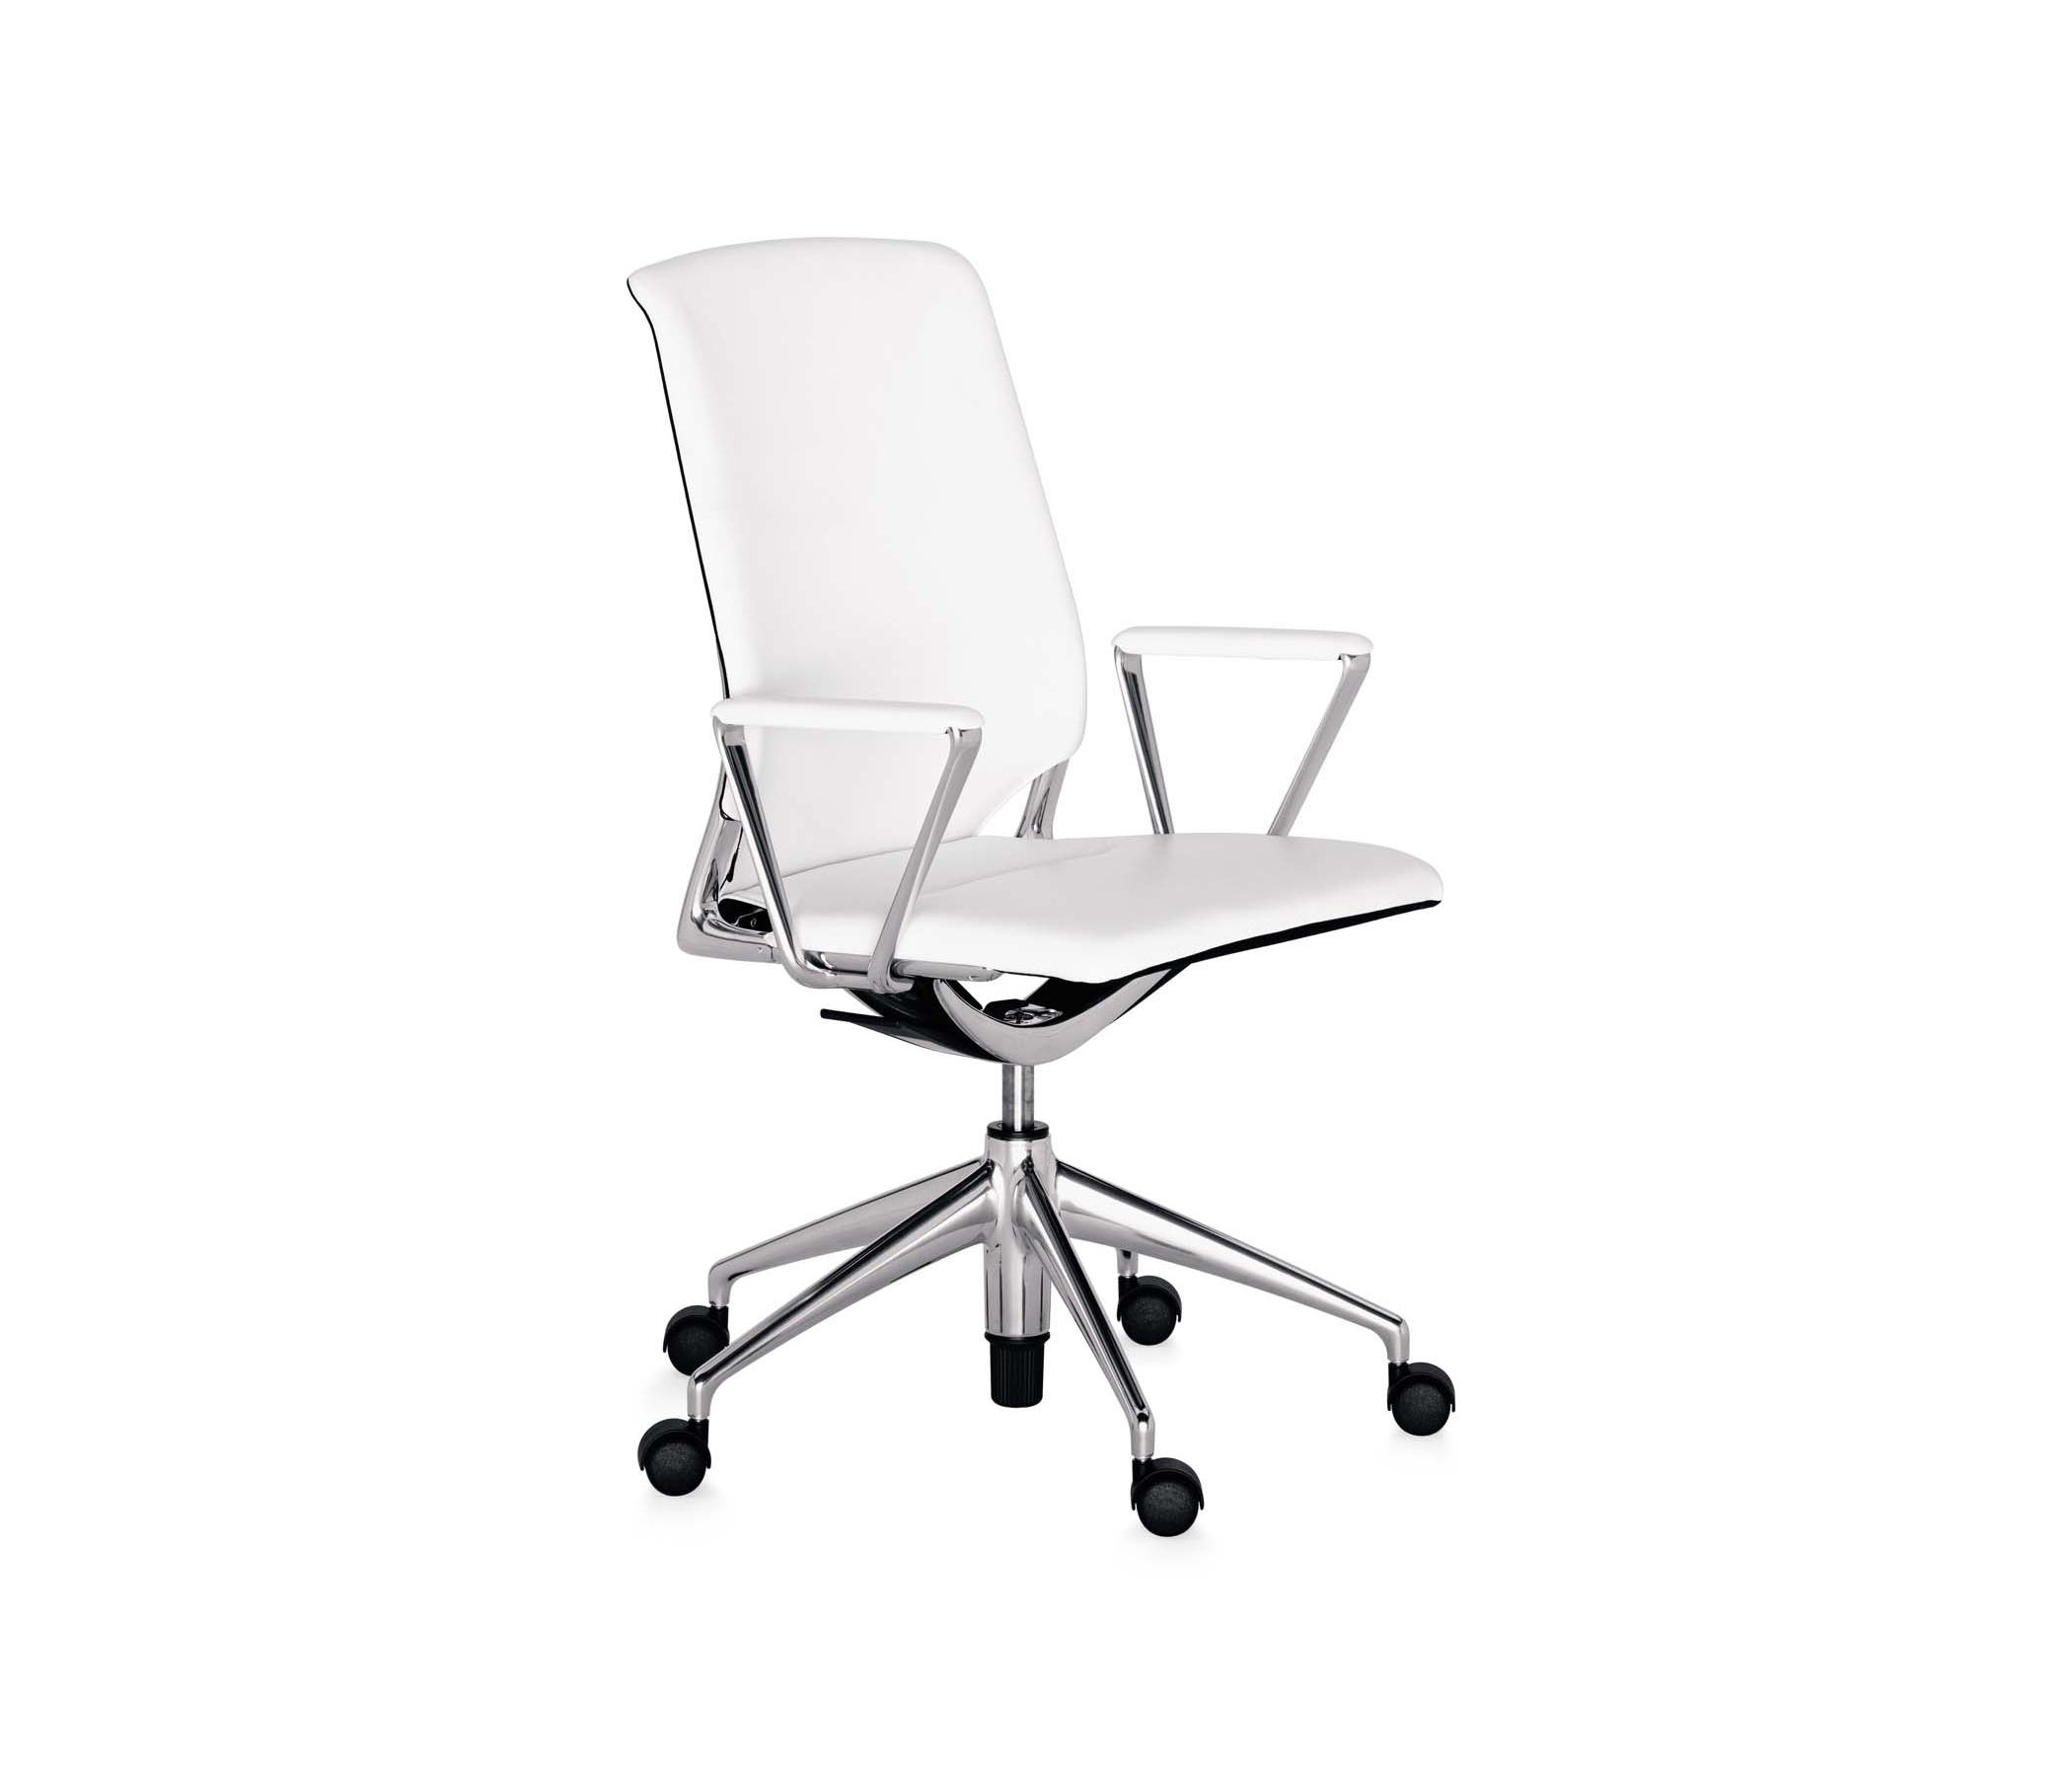 vitra office chair price folding uk meda chairs from architonic by